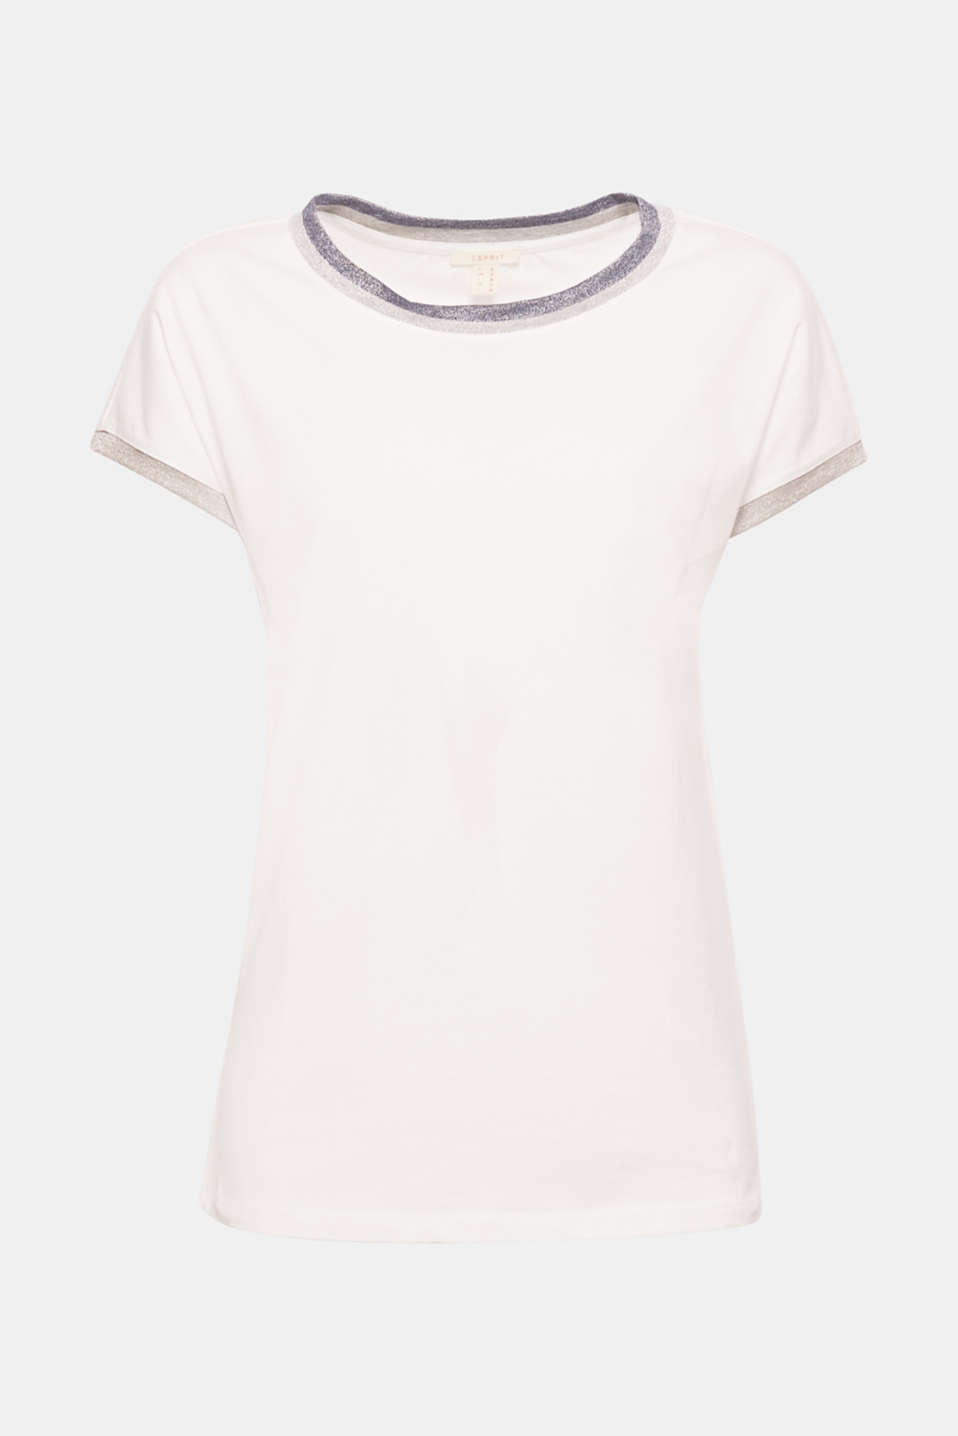 Sporty with a shot of glitter: the decorative trims on the neckline and sleeves give this cotton T-shirt its new look!